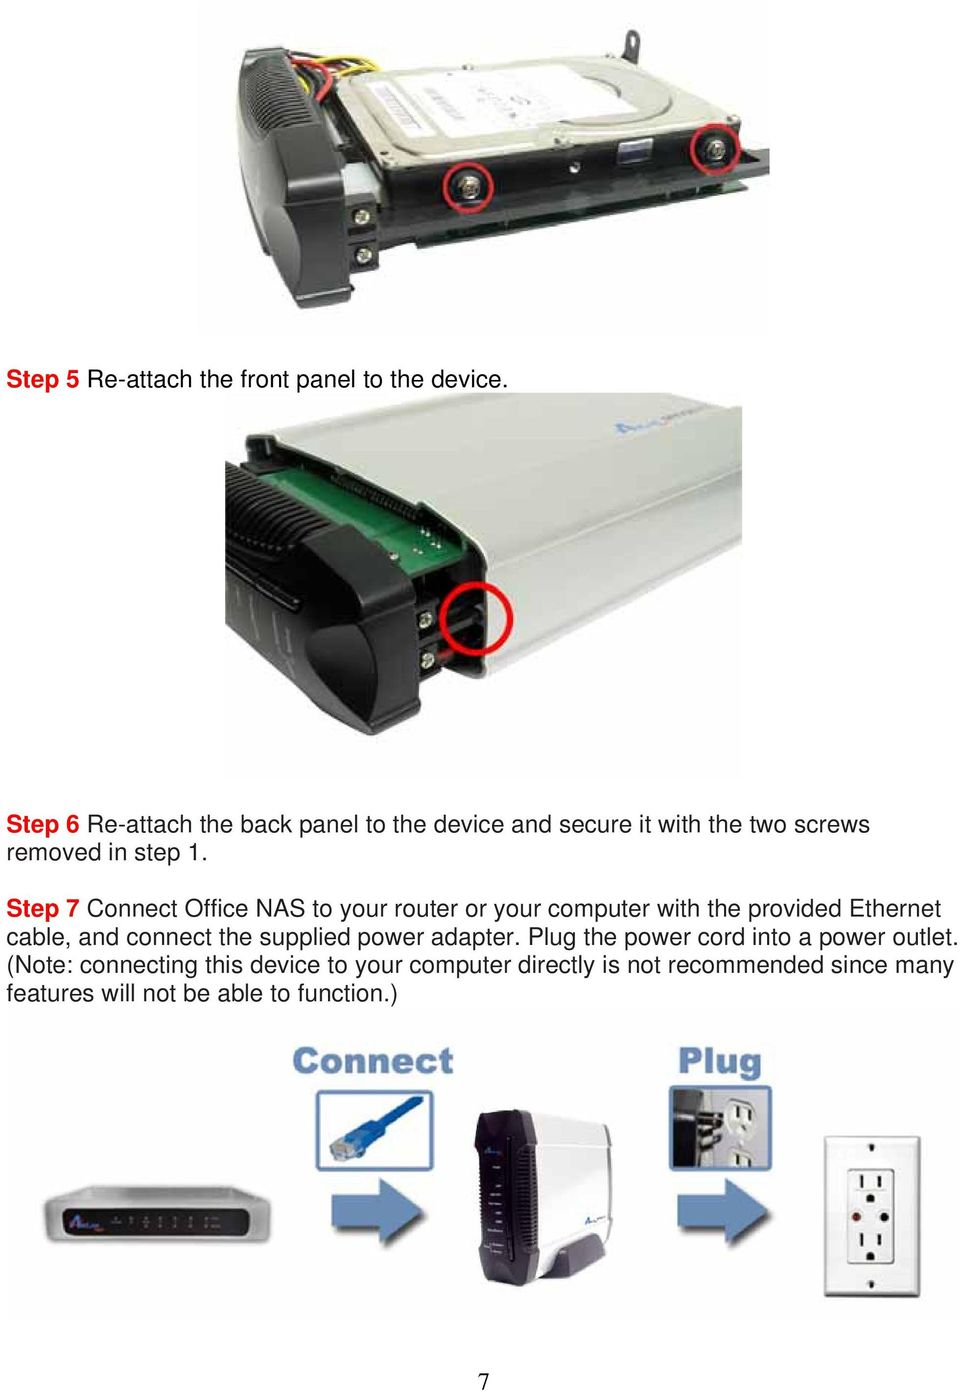 Step 7 Connect Office NAS to your router or your computer with the provided Ethernet cable, and connect the